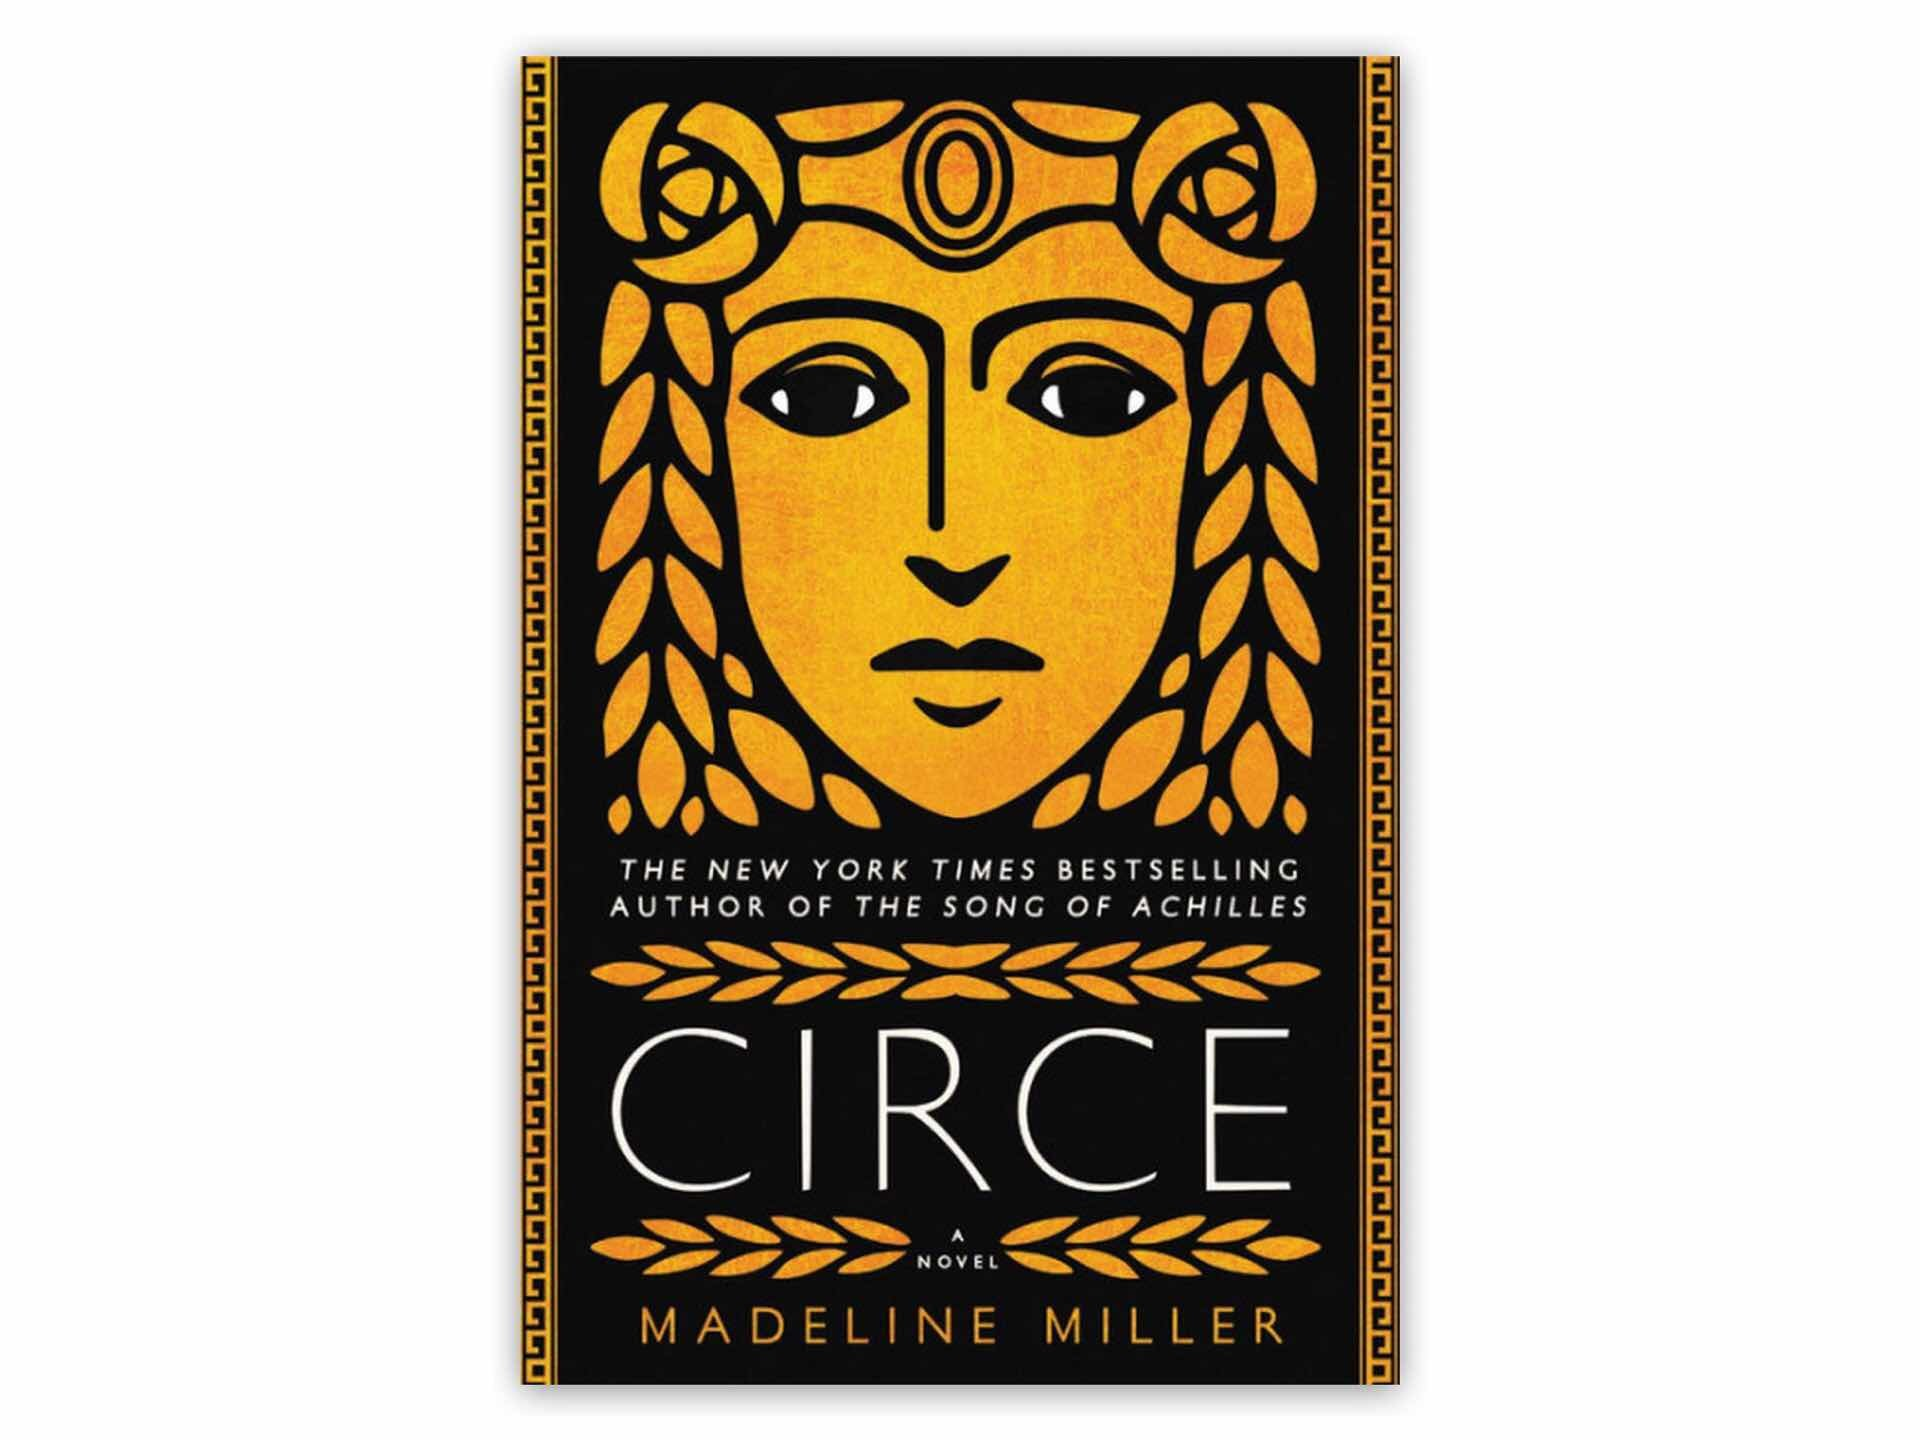 Circe by Madeline Miller. ($17 hardcover)